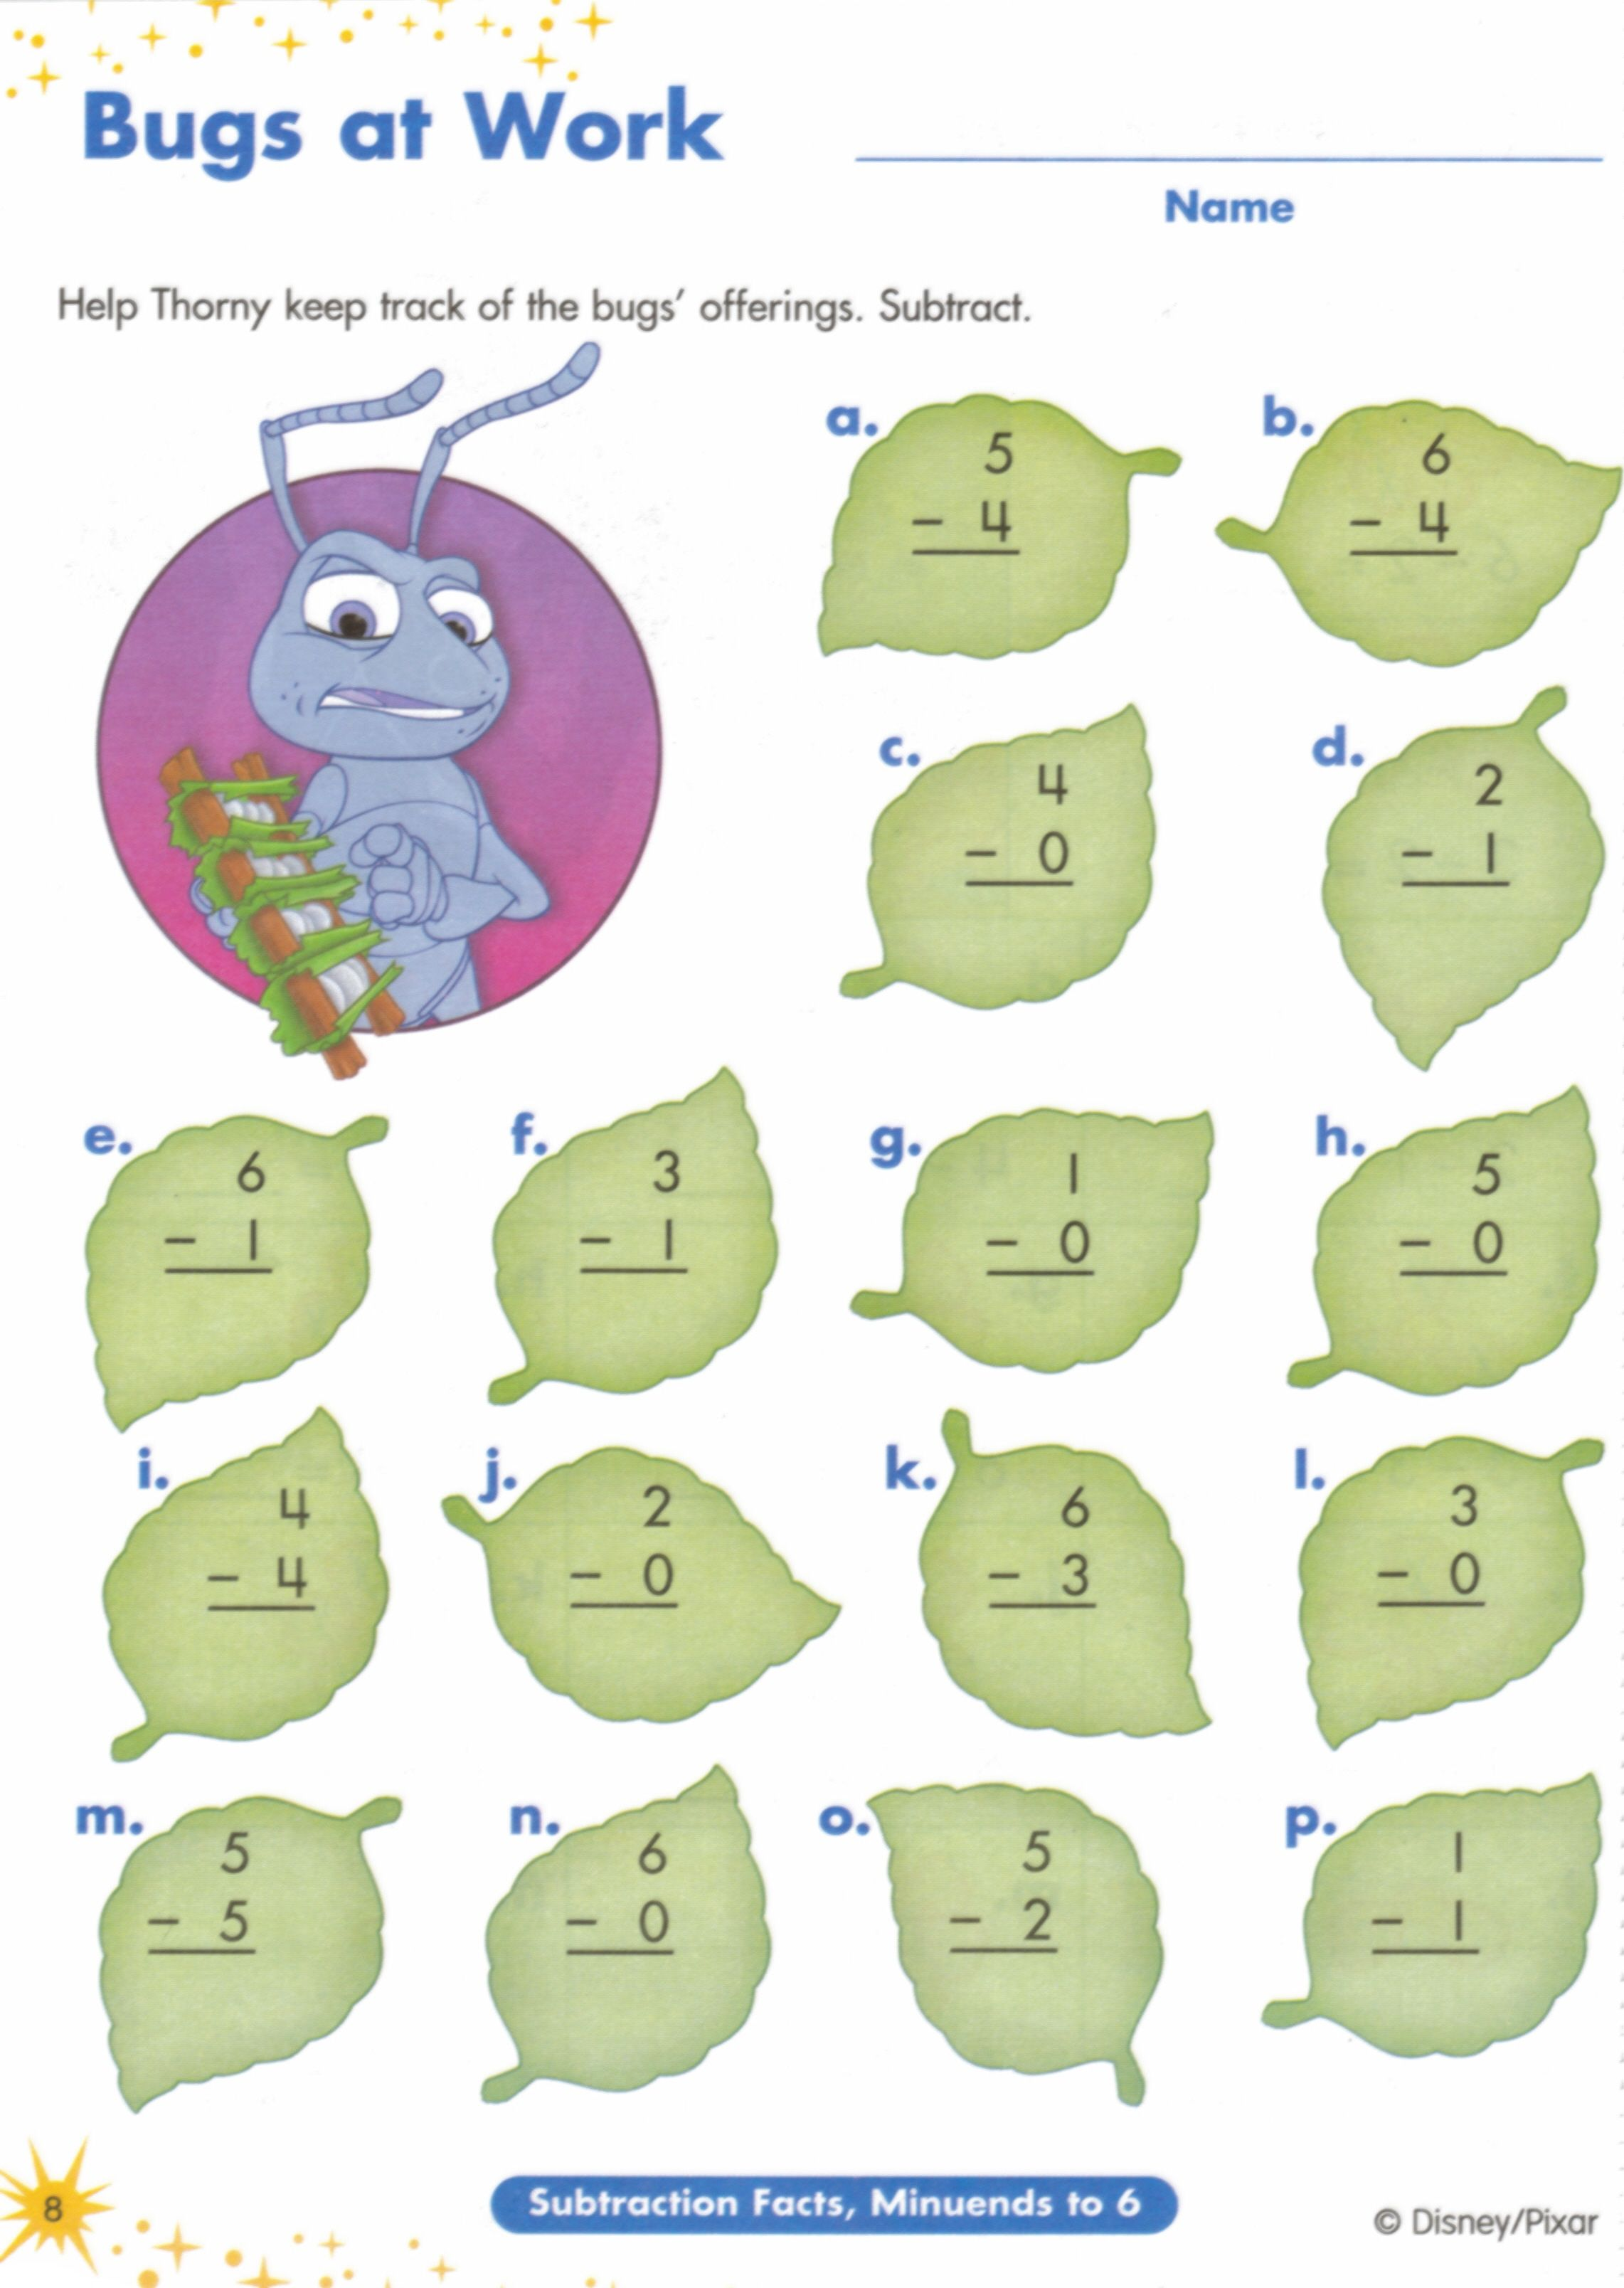 Weirdmailus  Personable  Images About Worksheets On Pinterest  Fun Facts For Kids  With Fetching  Images About Worksheets On Pinterest  Fun Facts For Kids Earth Day Worksheets And Jungles With Delectable Number Sense Worksheets Rd Grade Also Year  Chemistry Worksheets In Addition Worksheet And Workbook And  Easy Lessons Worksheets As Well As Ks Worksheets English Additionally Linear Equation In Two Variables Worksheets From Pinterestcom With Weirdmailus  Fetching  Images About Worksheets On Pinterest  Fun Facts For Kids  With Delectable  Images About Worksheets On Pinterest  Fun Facts For Kids Earth Day Worksheets And Jungles And Personable Number Sense Worksheets Rd Grade Also Year  Chemistry Worksheets In Addition Worksheet And Workbook From Pinterestcom